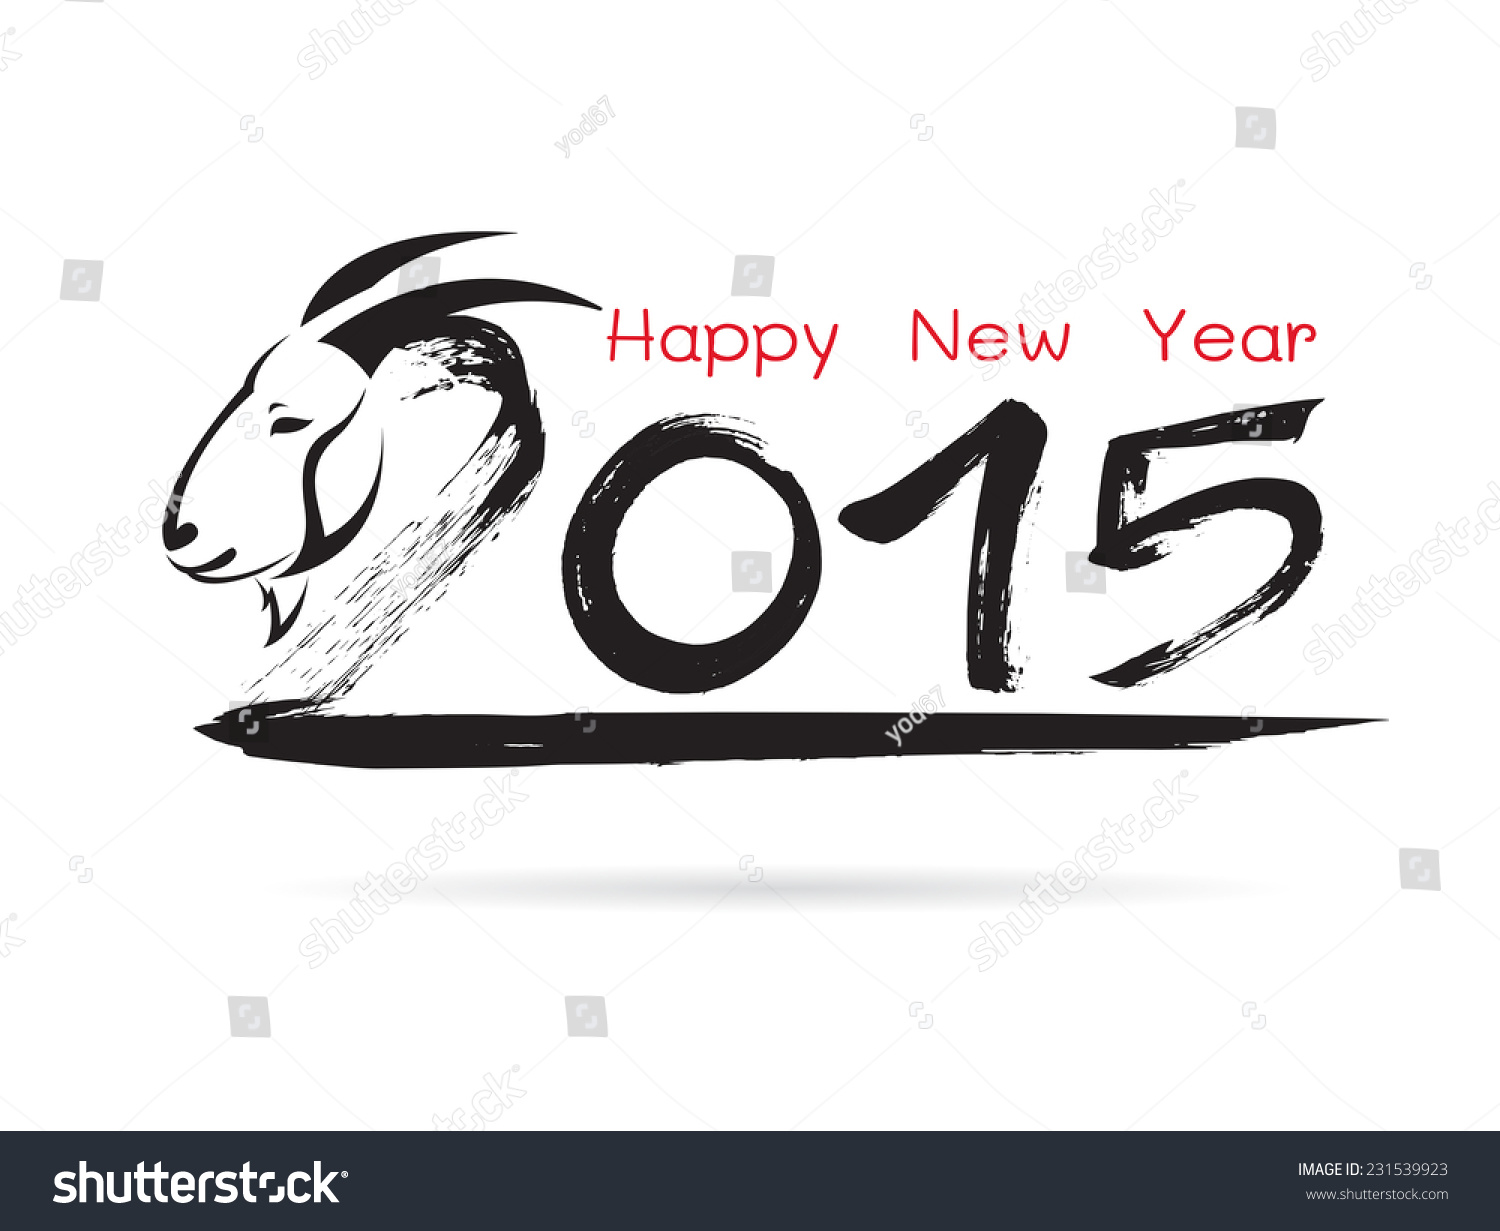 Calligraphy vector 2015 new year sign stock vector Calligraphy and sign